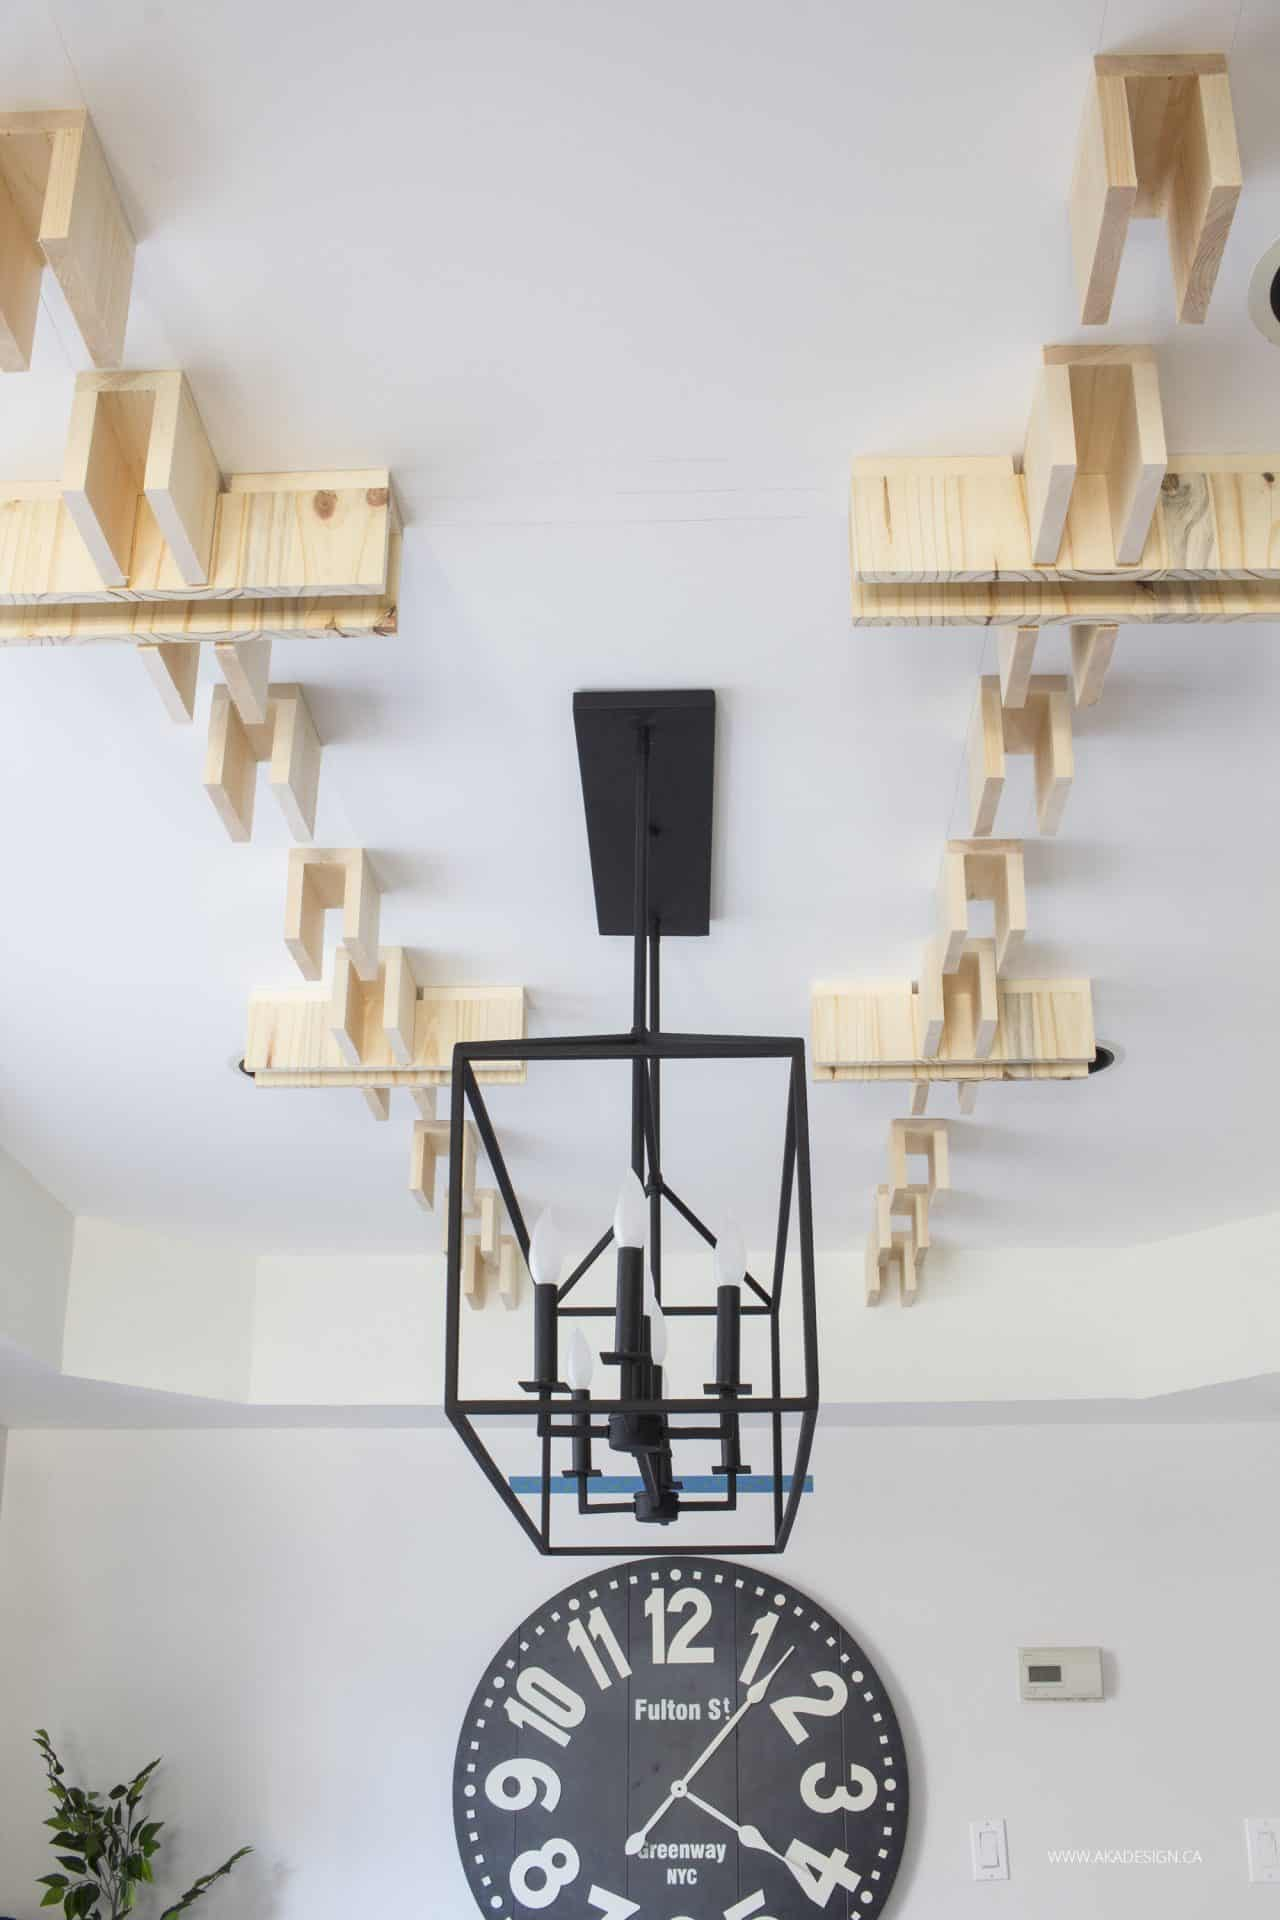 all base boxes on ceiling